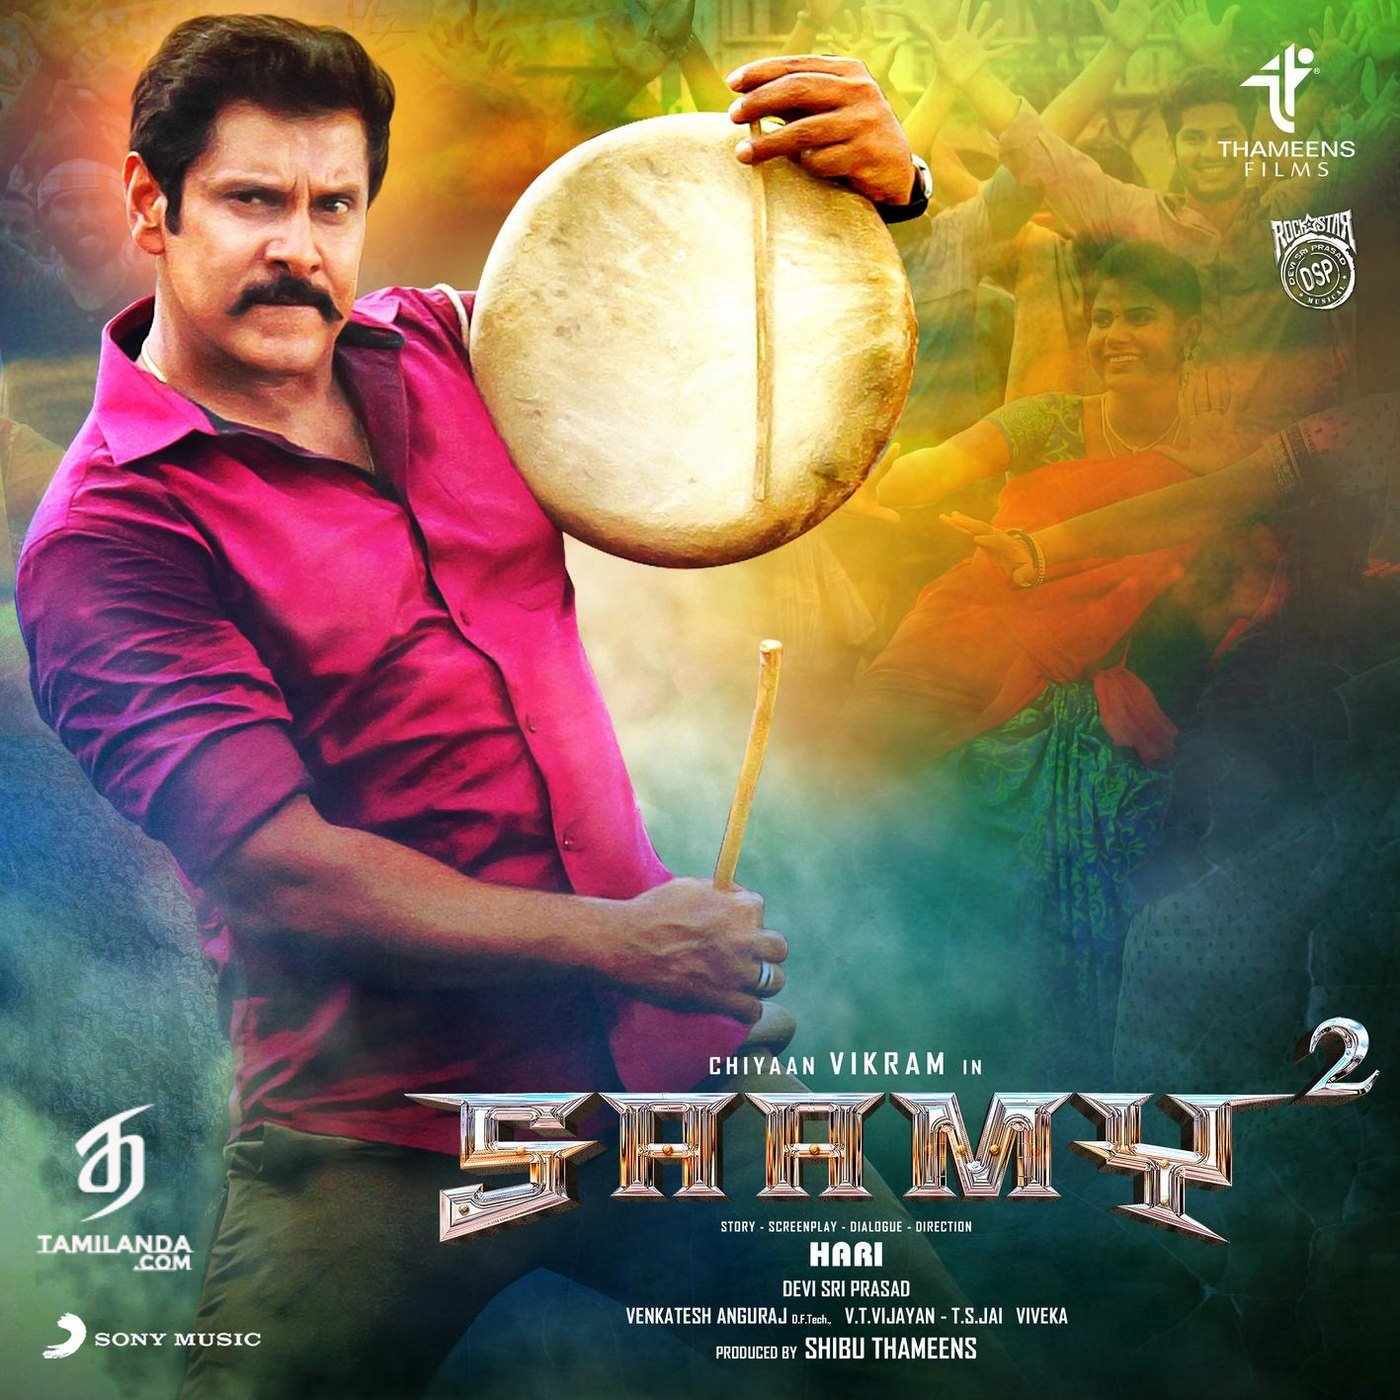 Saamy Square 24 BIT 48 KHZ FLAC Songs